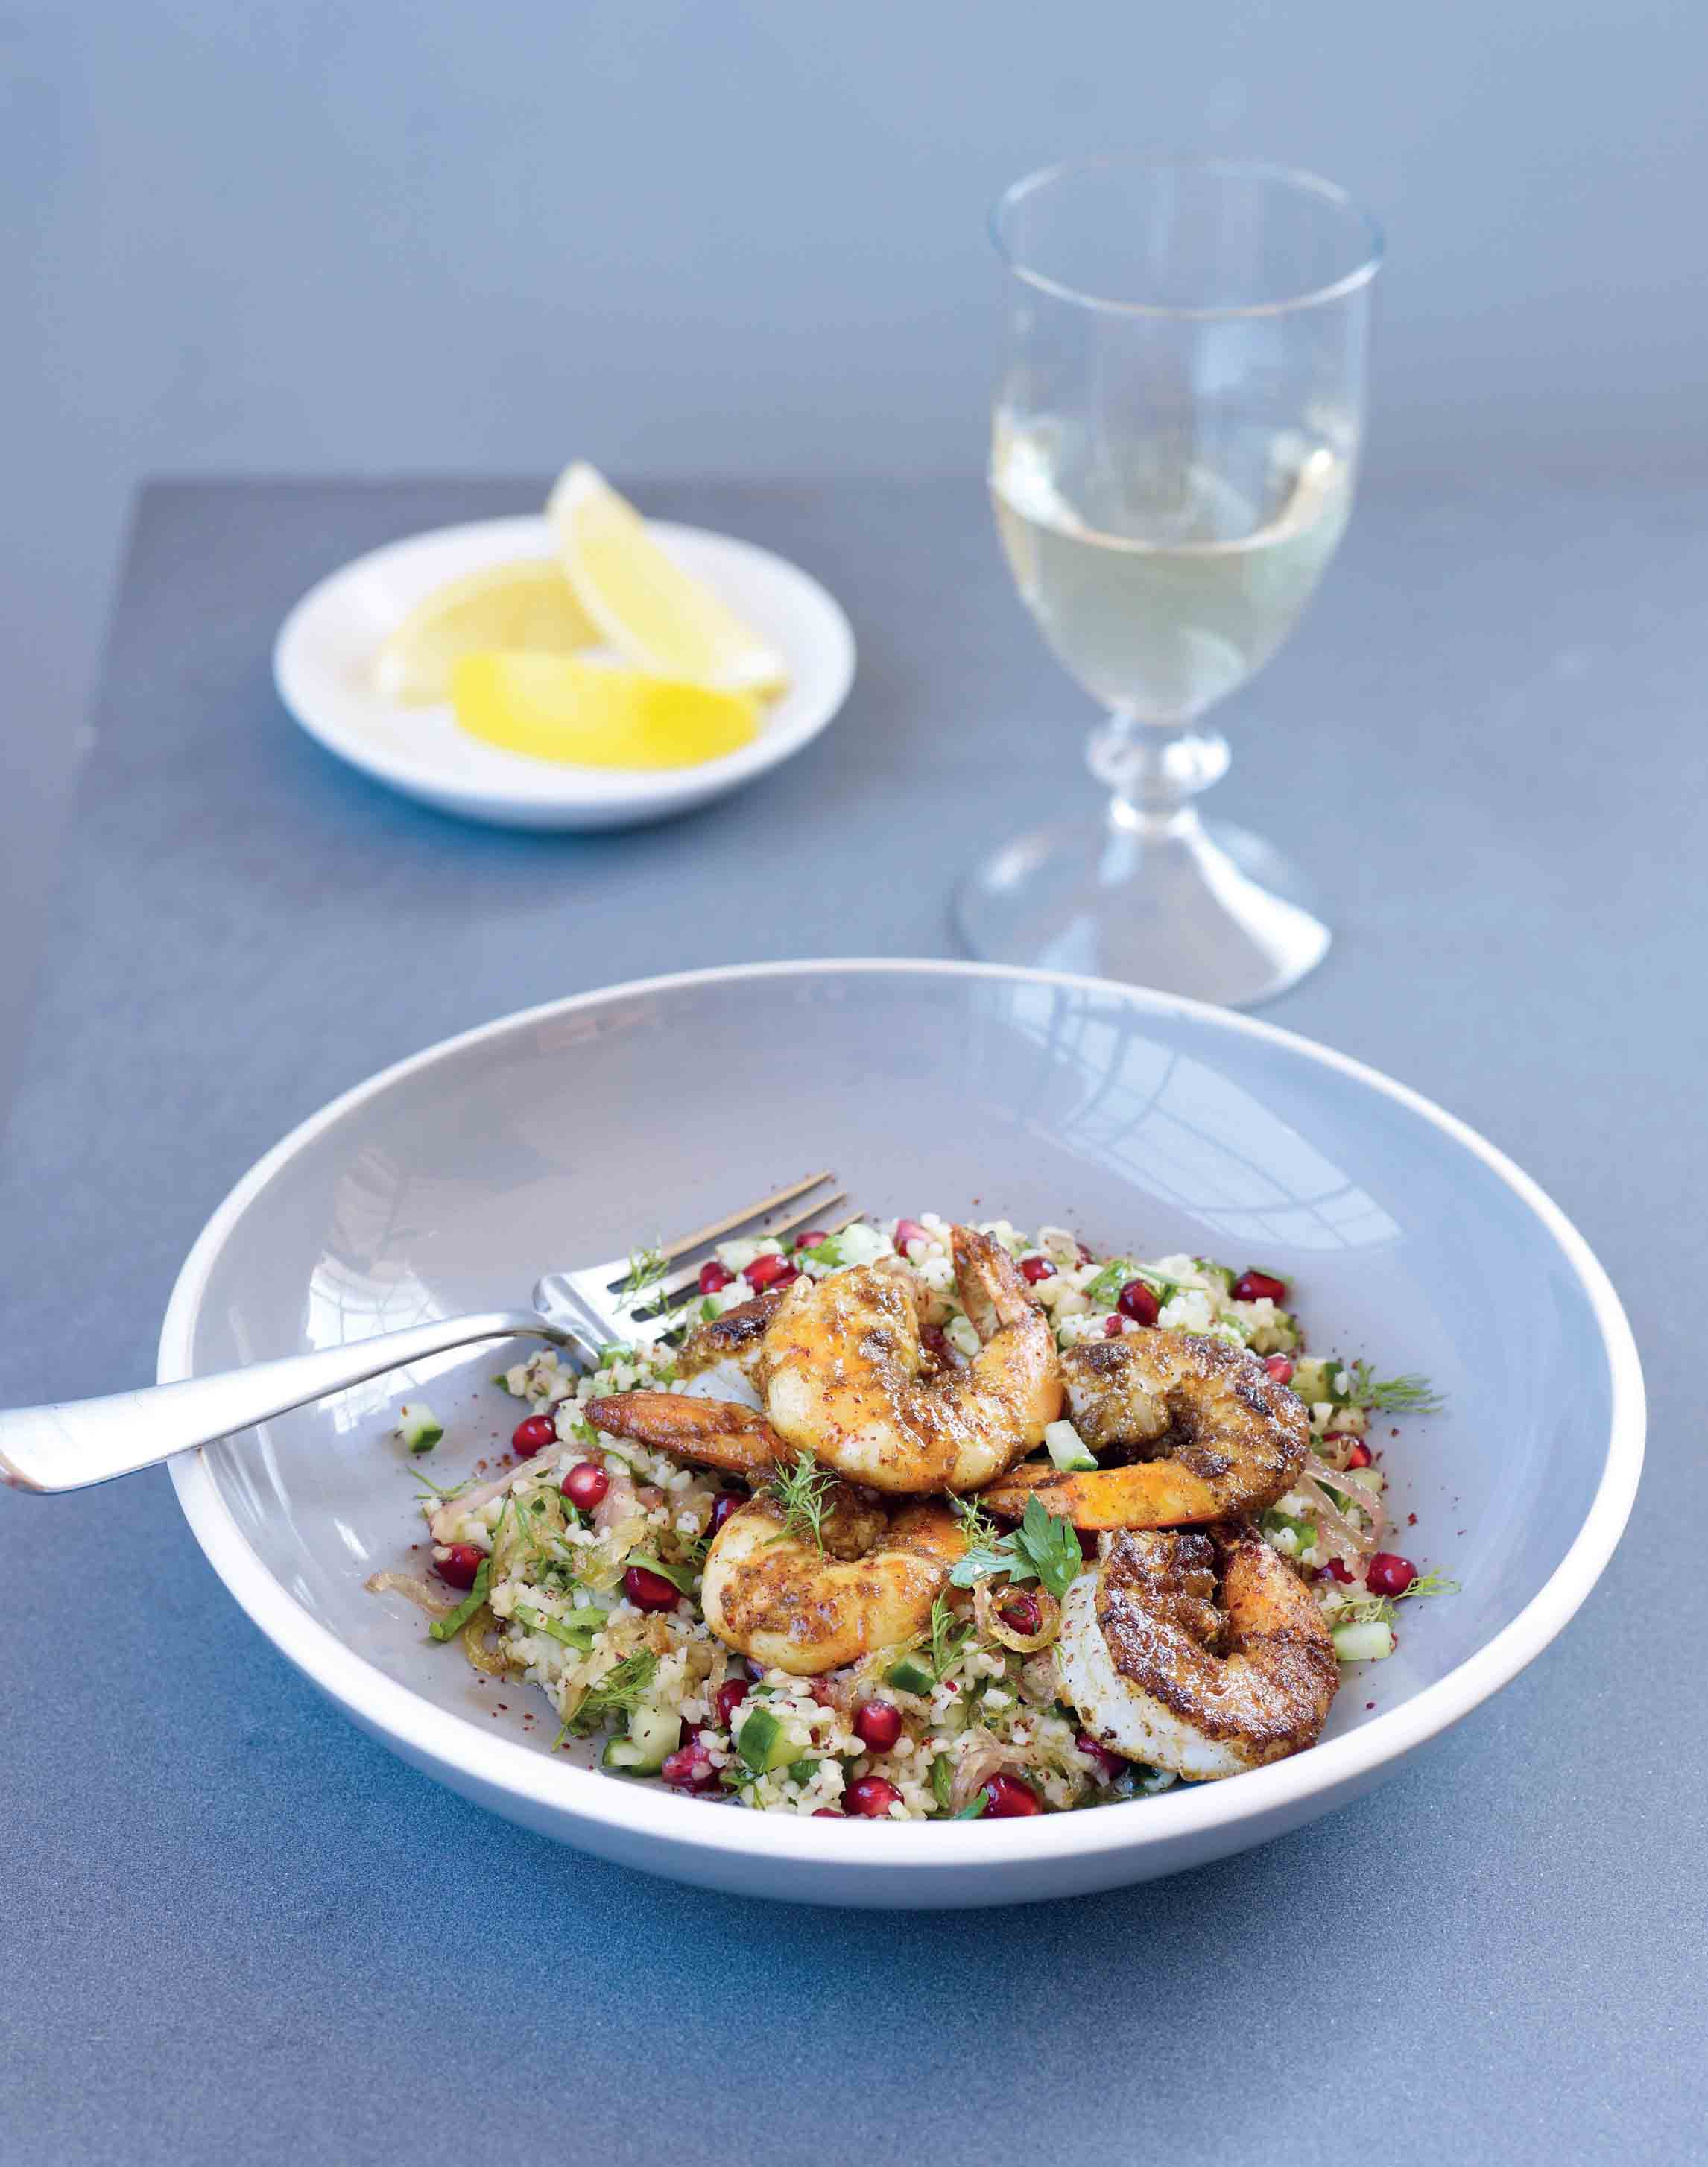 Za'atar crusted prawns with a bulghar wheat and herb salad